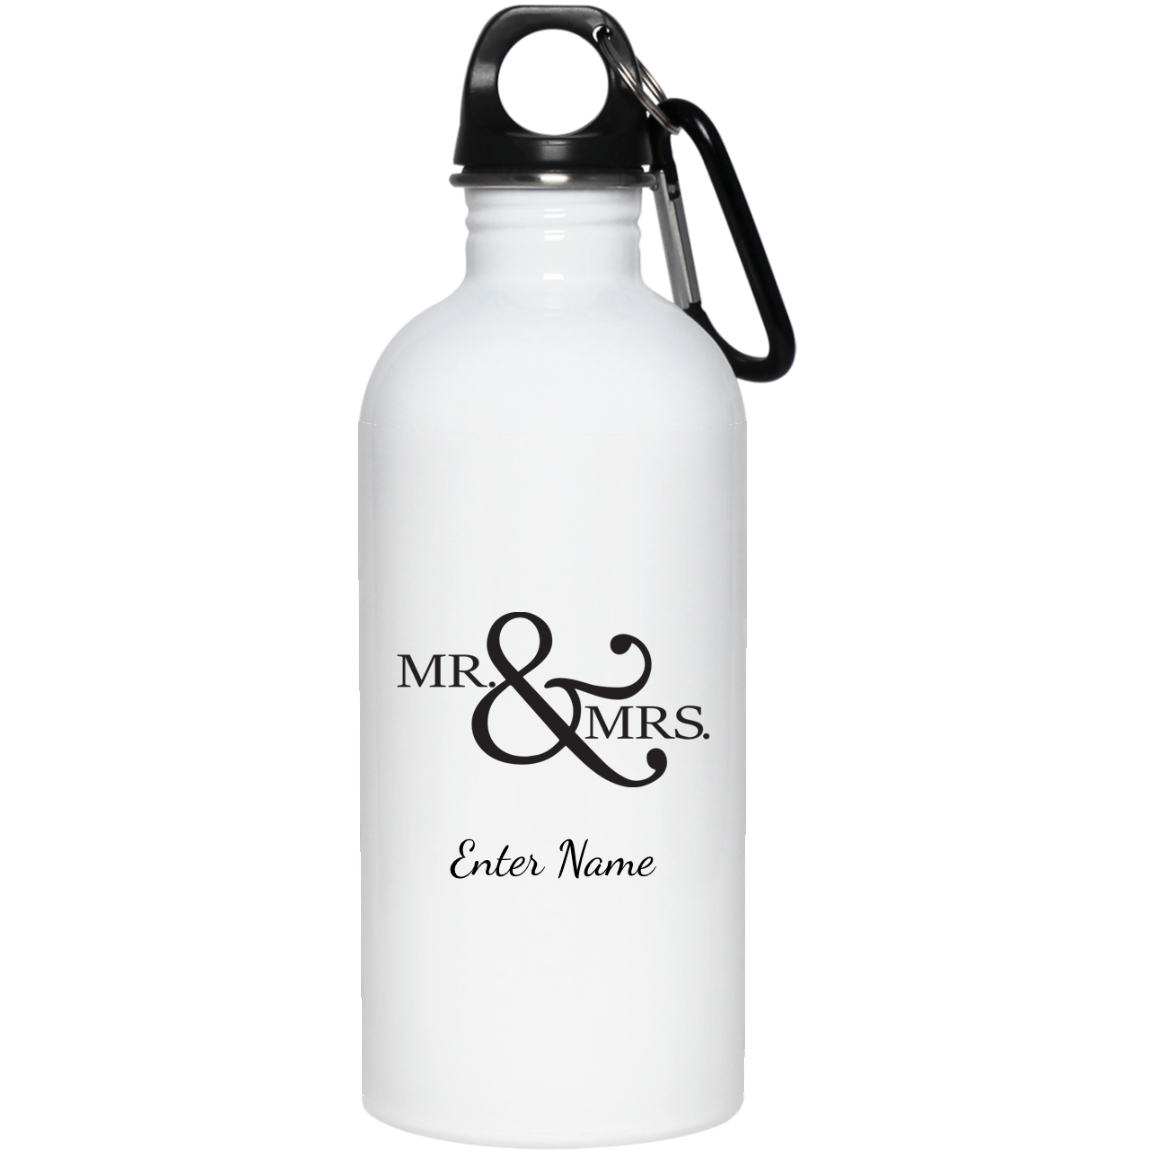 Wedding - Mr. & Mrs. Big And Symbol - Custom 20 oz. Stainless Steel Water Bottle